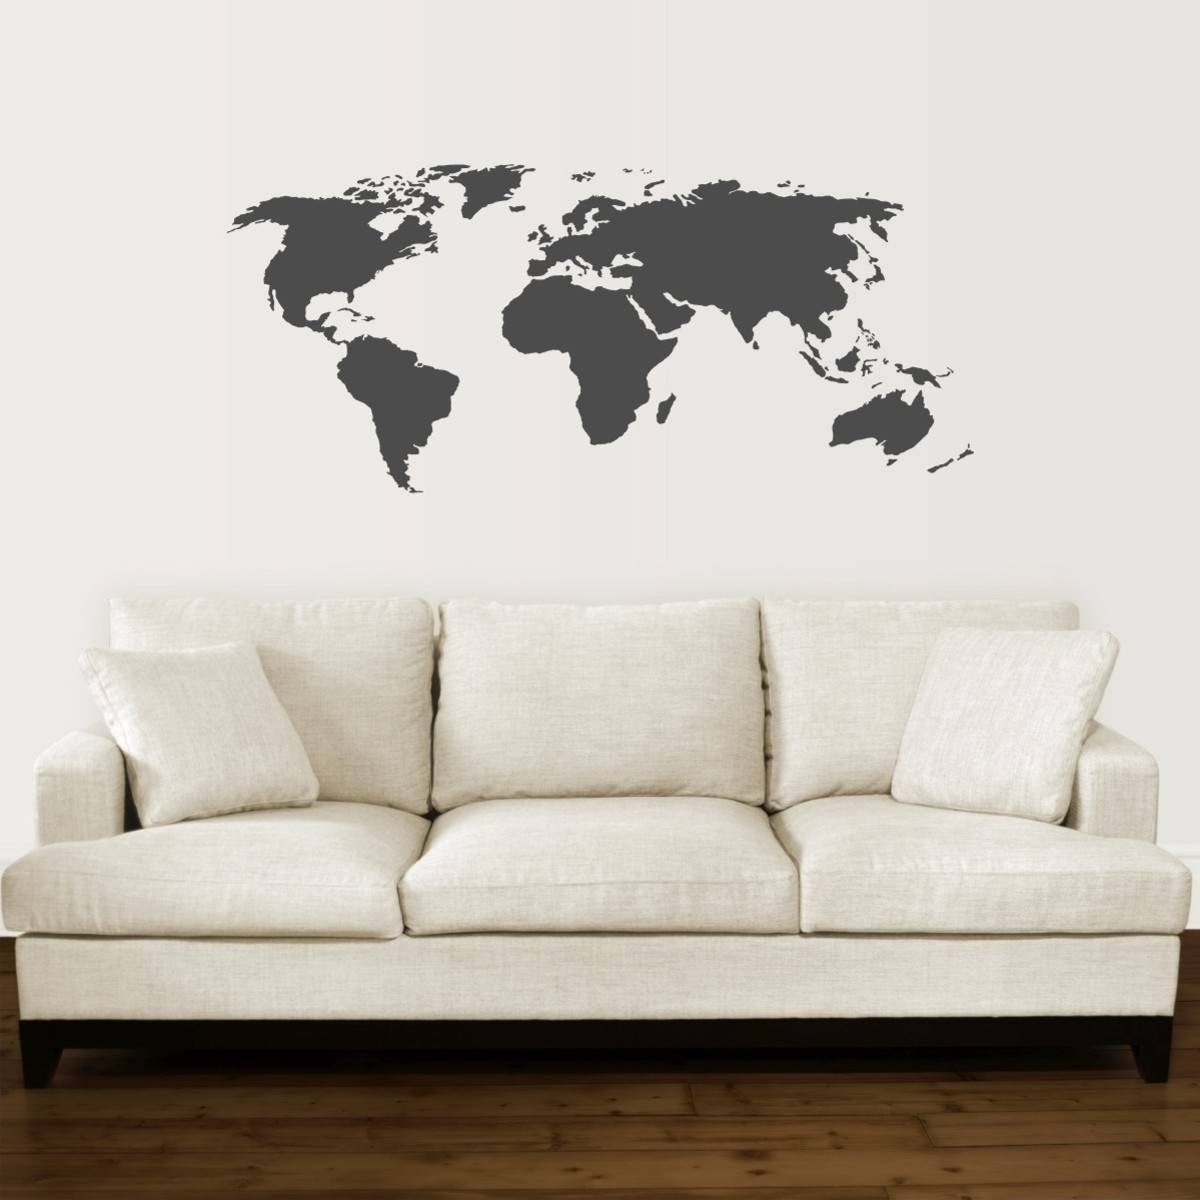 World Map Wall Quotes™ Wall Art Decal | Wallquotes Regarding Most Recently Released World Map Wall Art (View 3 of 20)